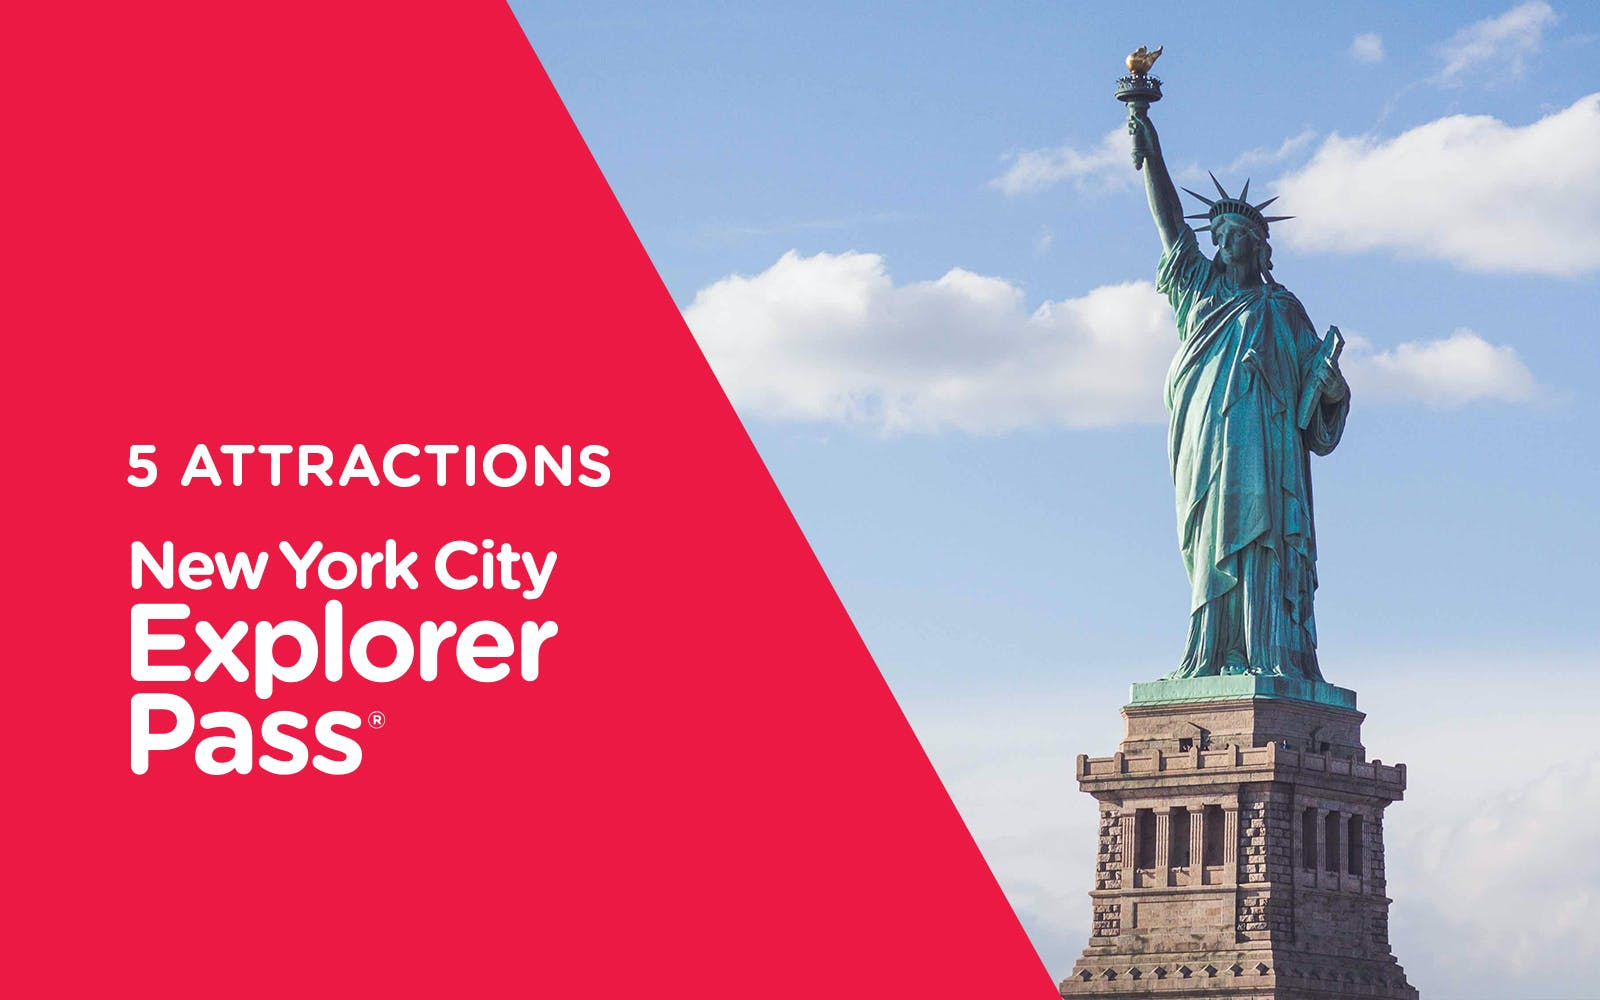 New York Explorer Pass - 5 Attractions